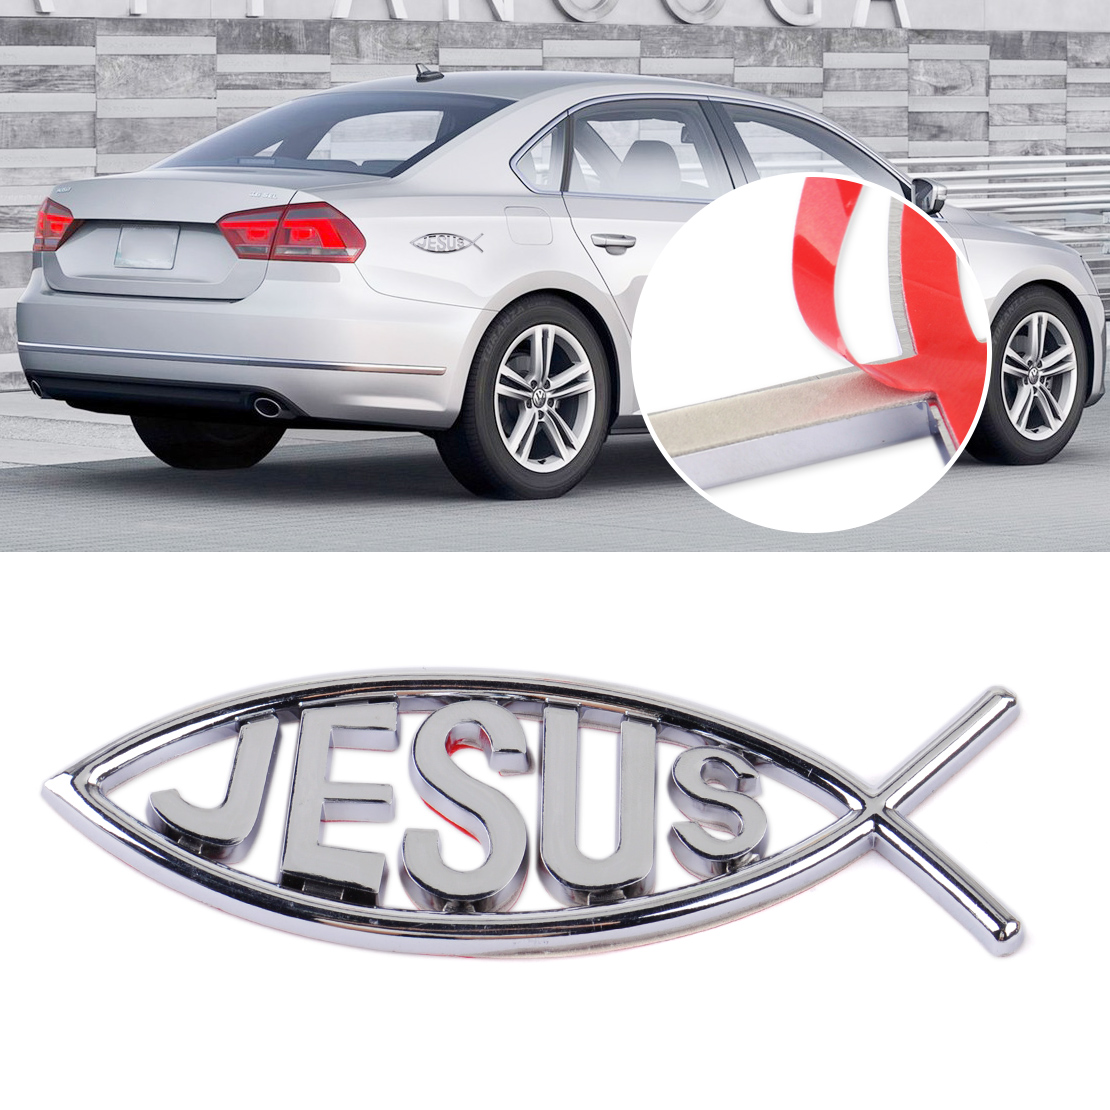 3d jesus fish symbol logo car emblem badge sticker decal for Fish symbol on cars